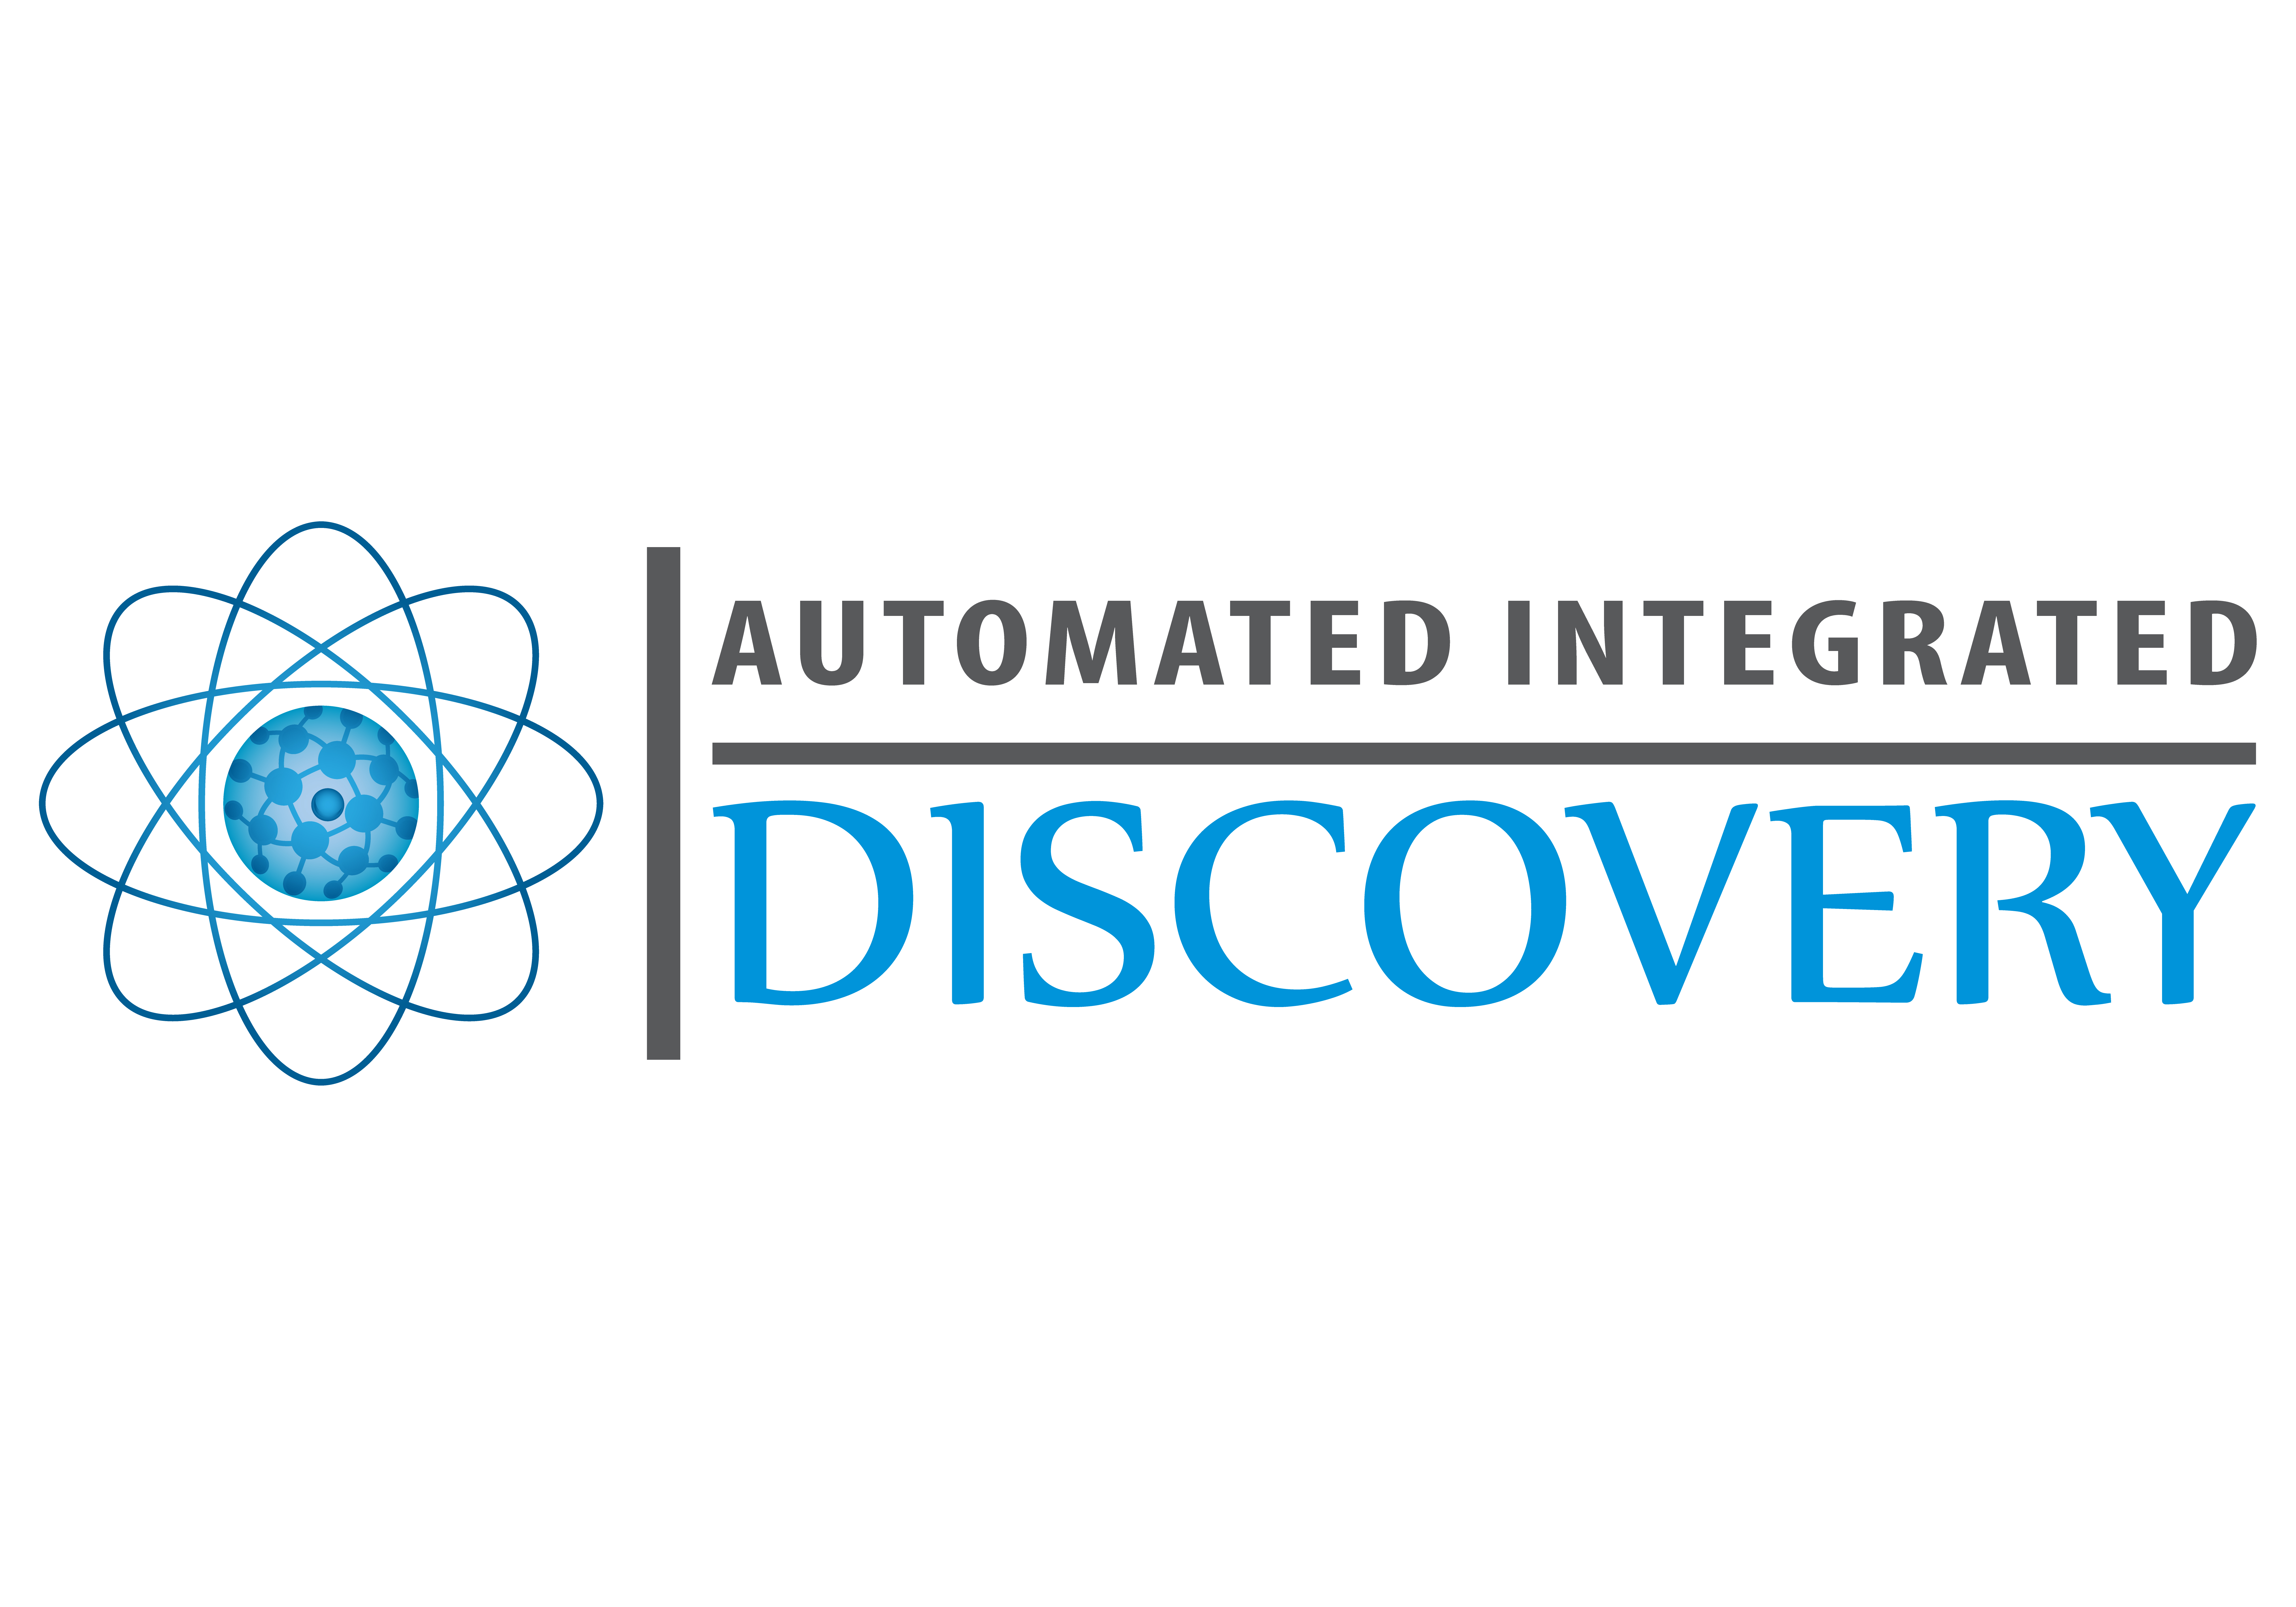 Logo Design by Private User - Entry No. 27 in the Logo Design Contest Automated Integrated Discovery  Logo Design.